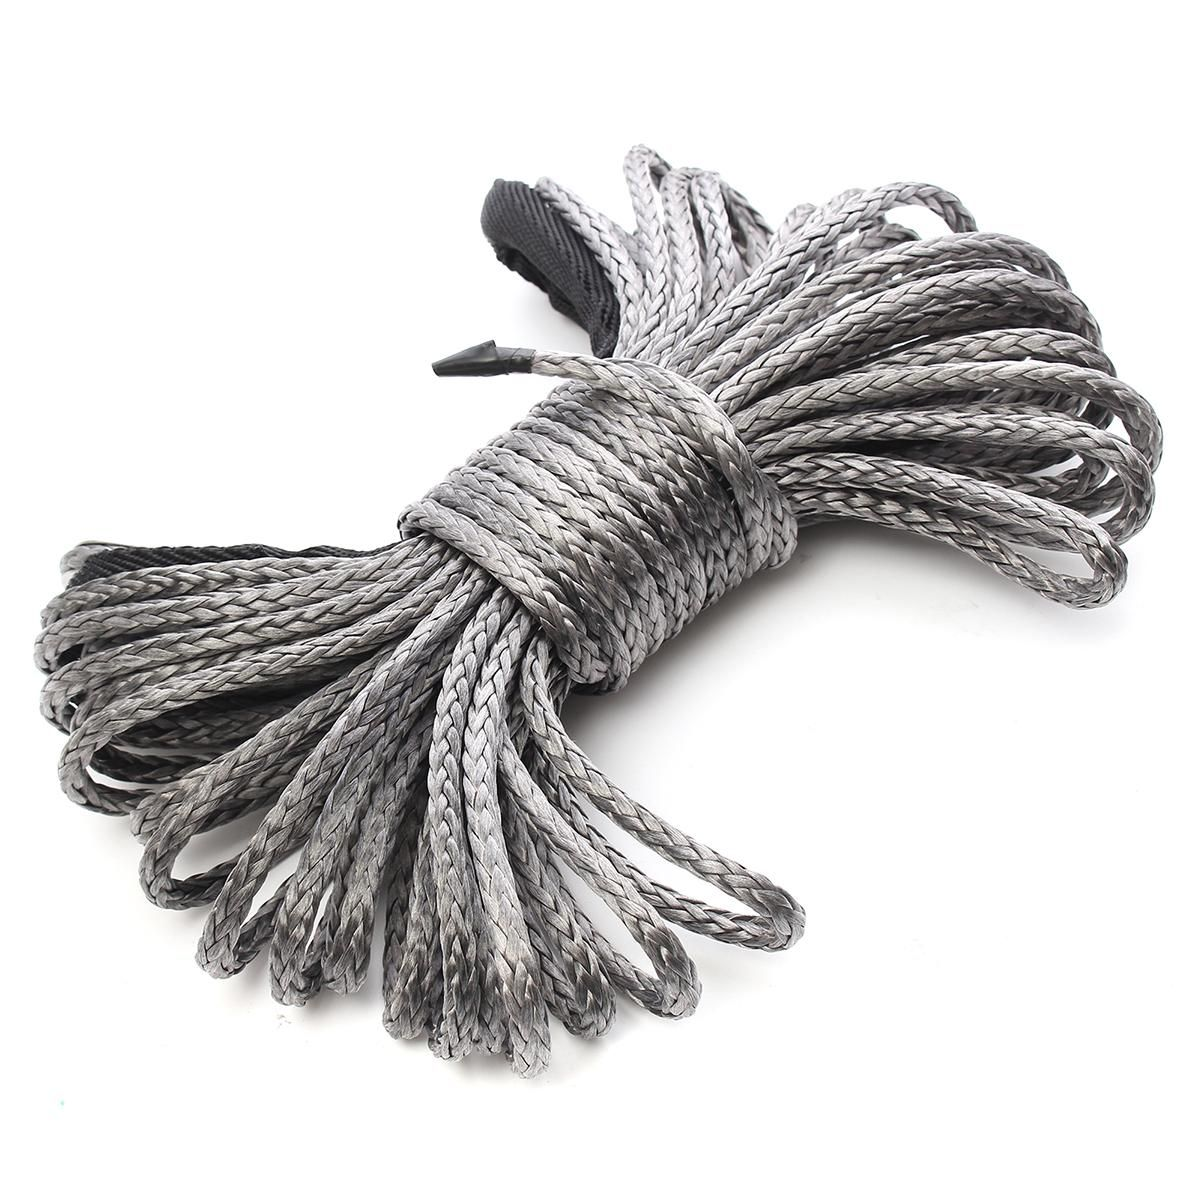 15m*6mm 1/4'' x 50' 7700lbs Grey Synthetic Winch Rope Cable Line With Hook for ATV UTV Off-Road